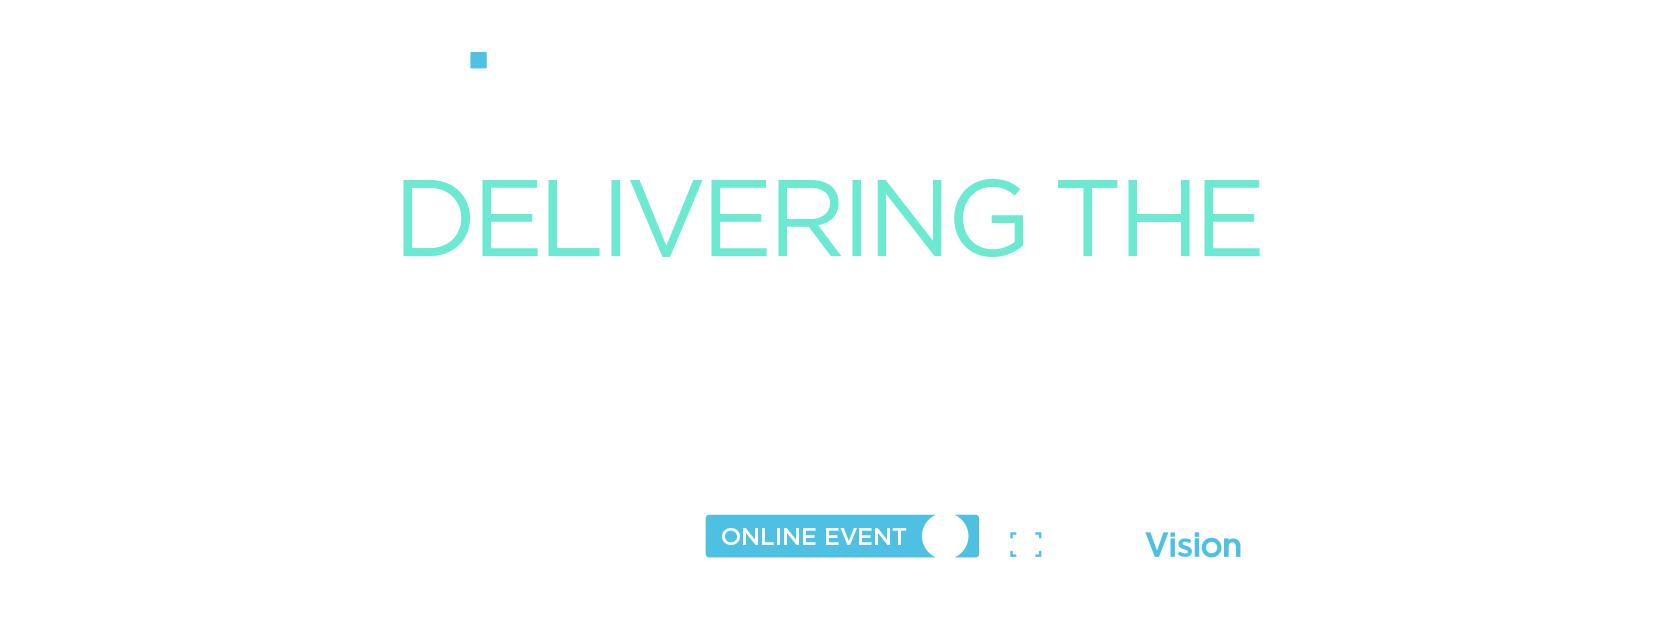 Delivering the full fibre gigabit society event branding